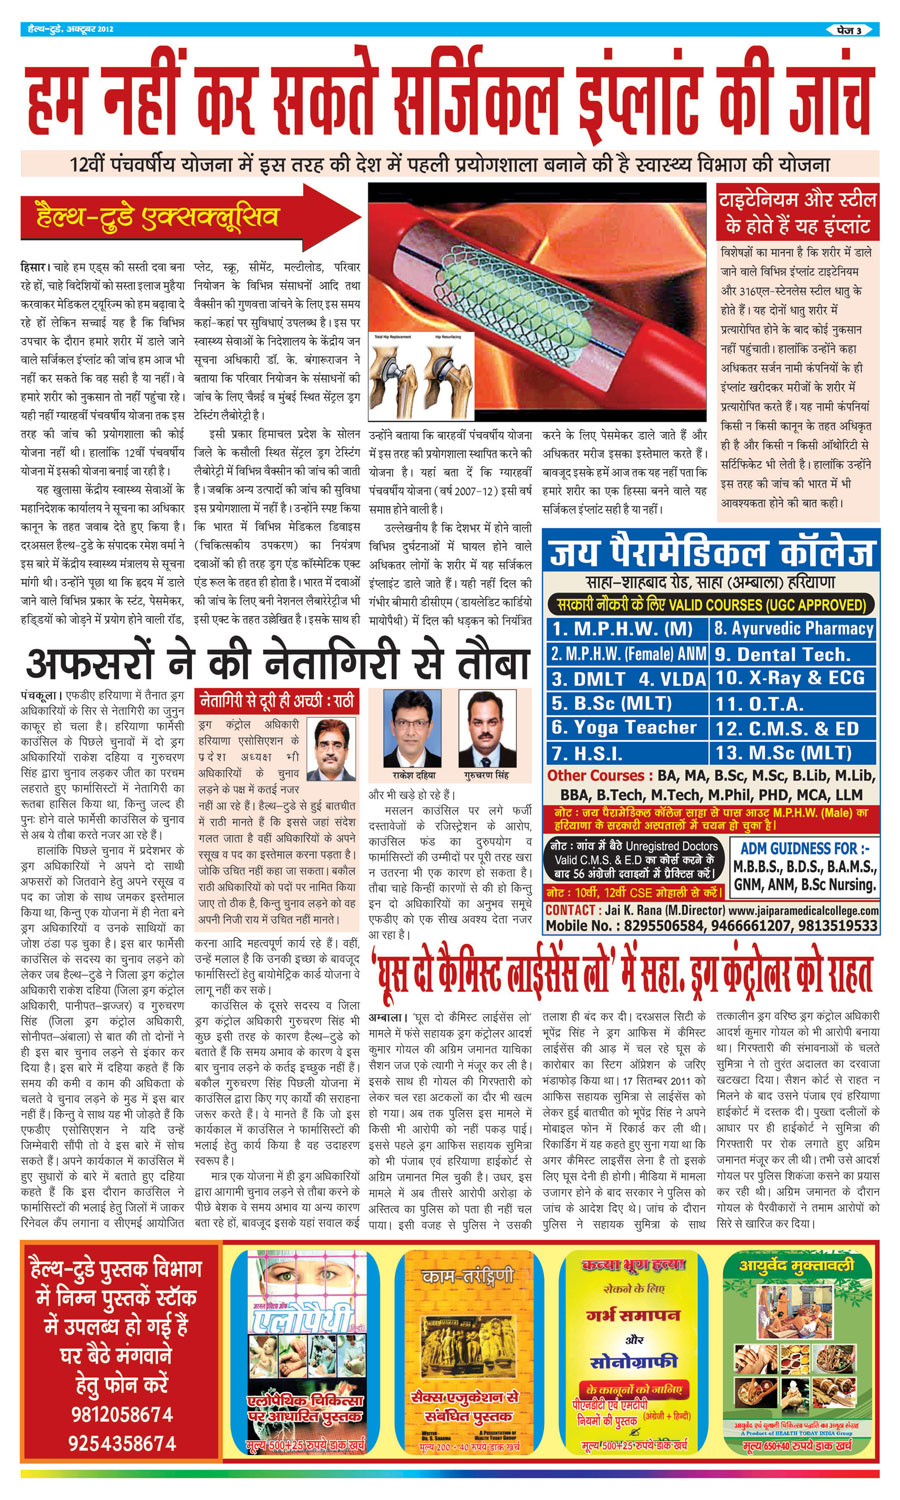 surgical heart implant testing in india medical health pharma news article fda haryana drug punjab raid